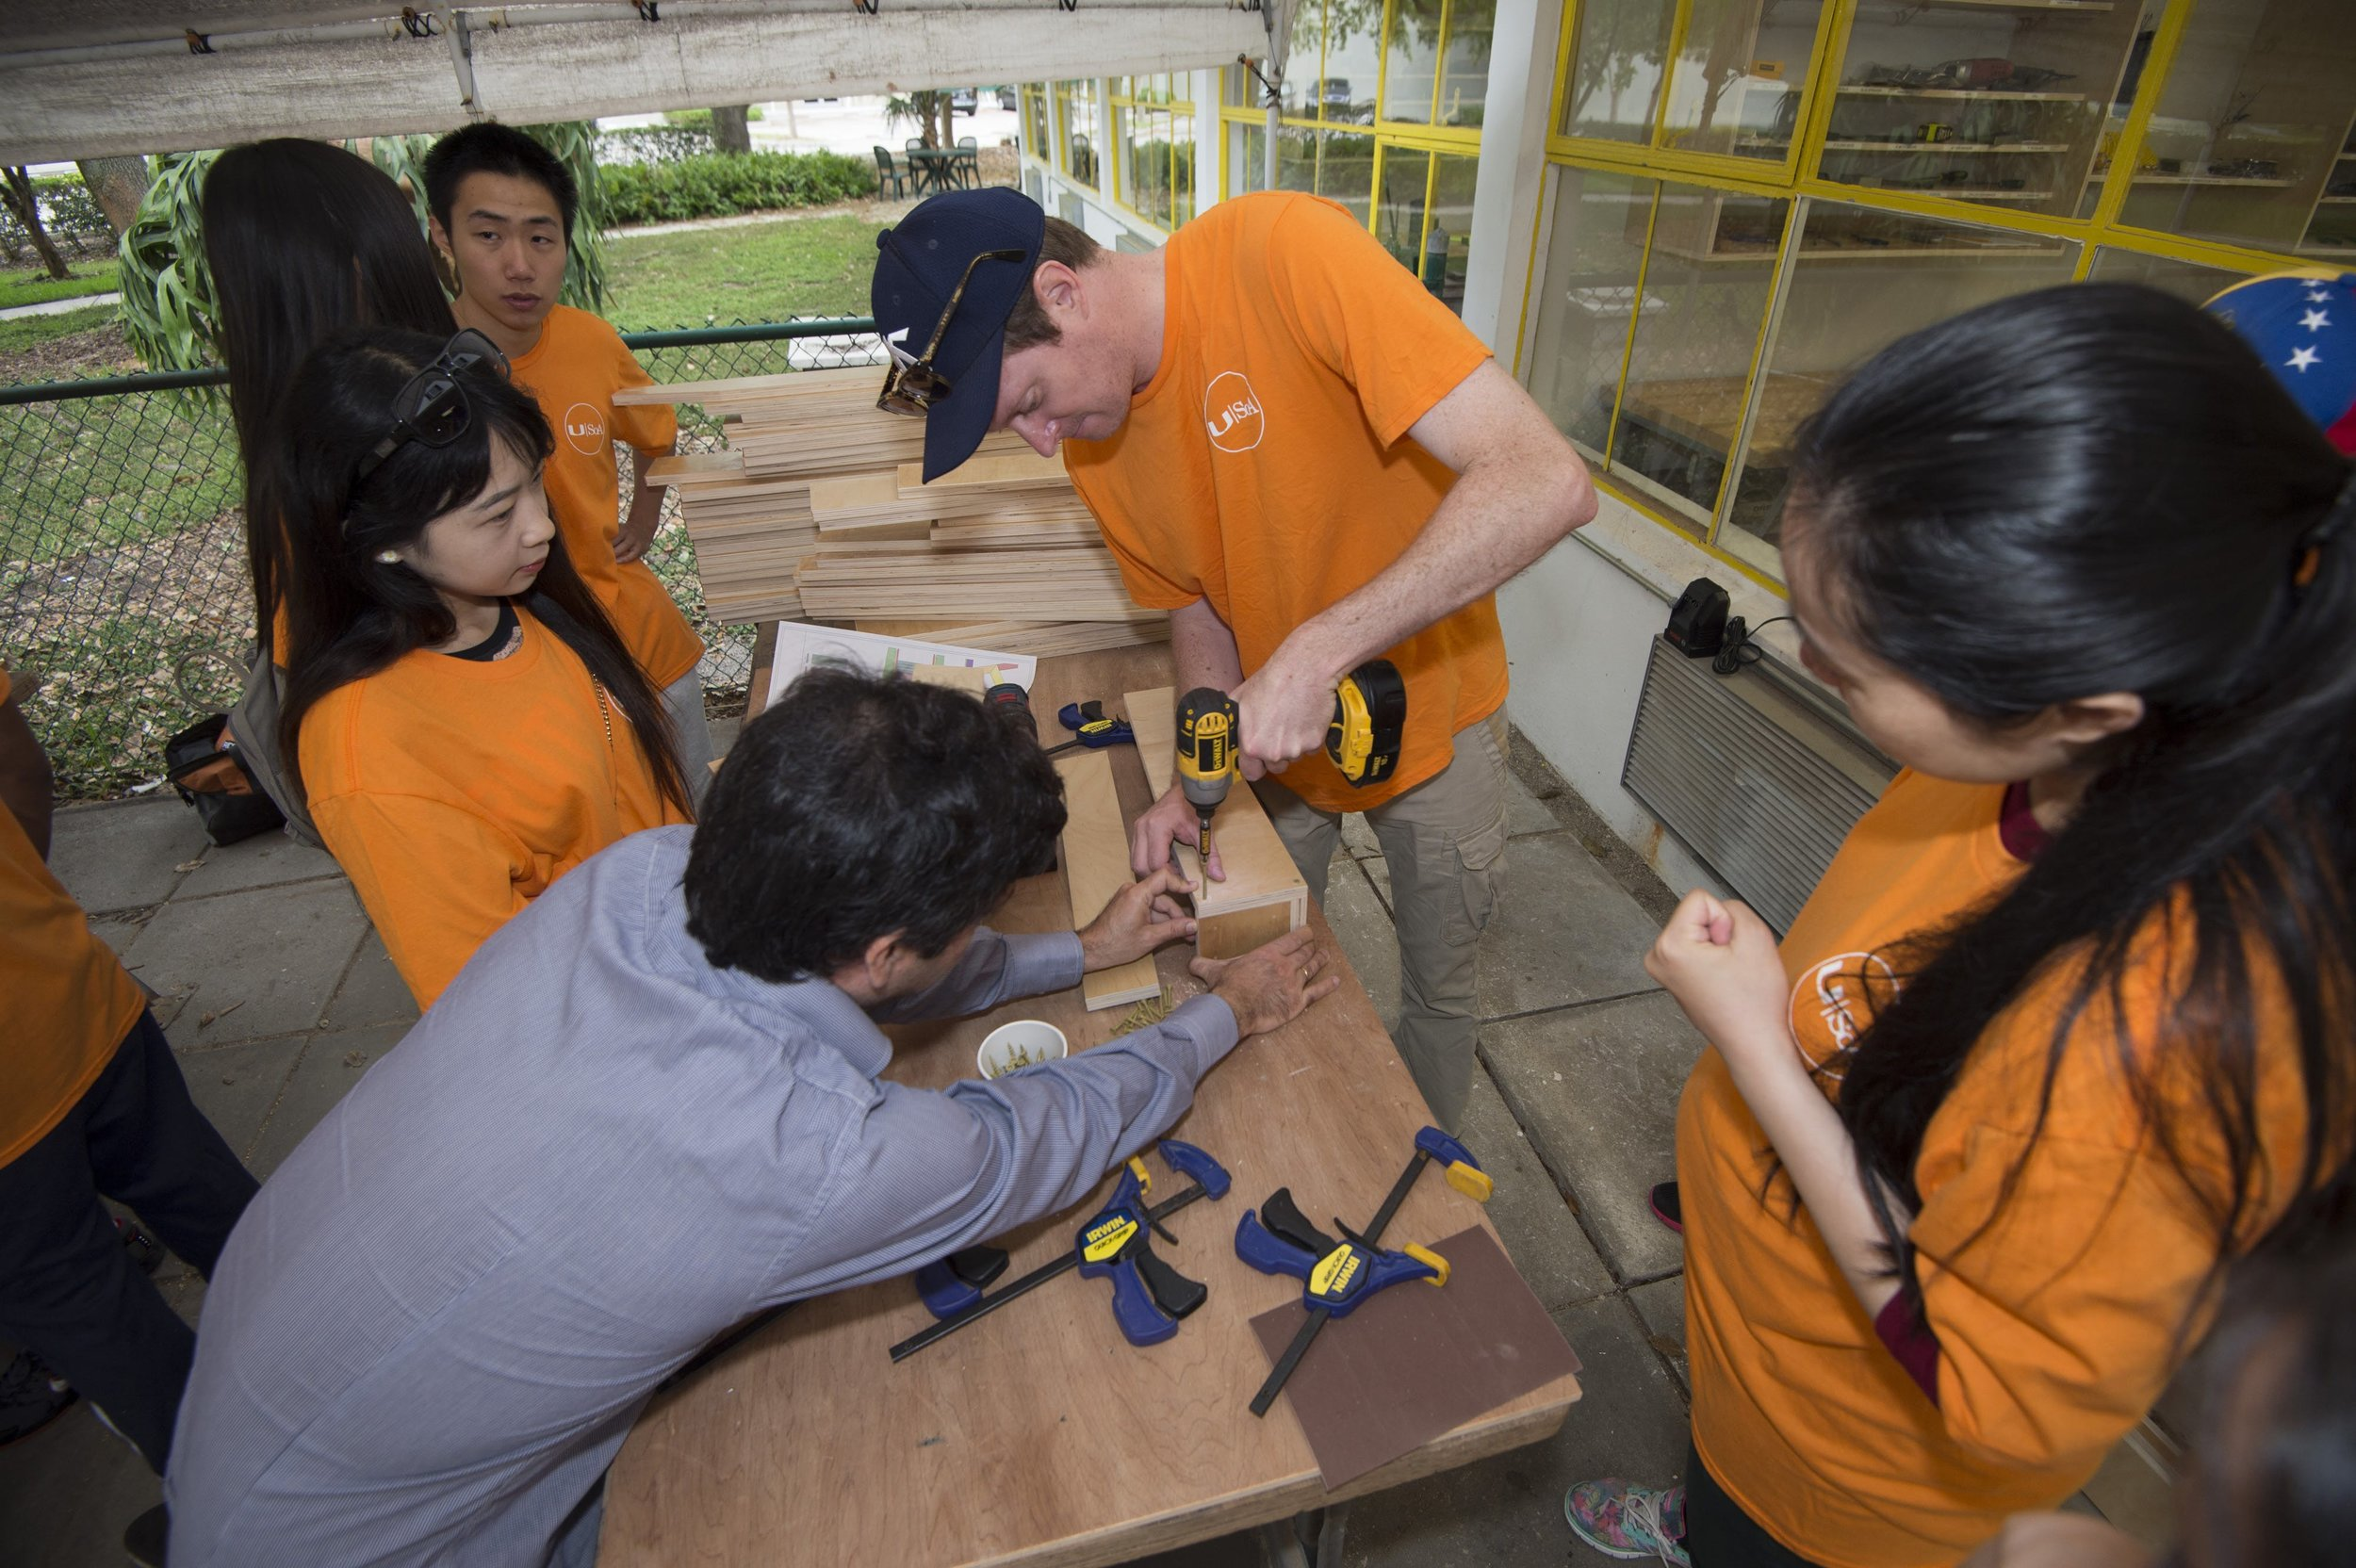 Chair Assembly With Students